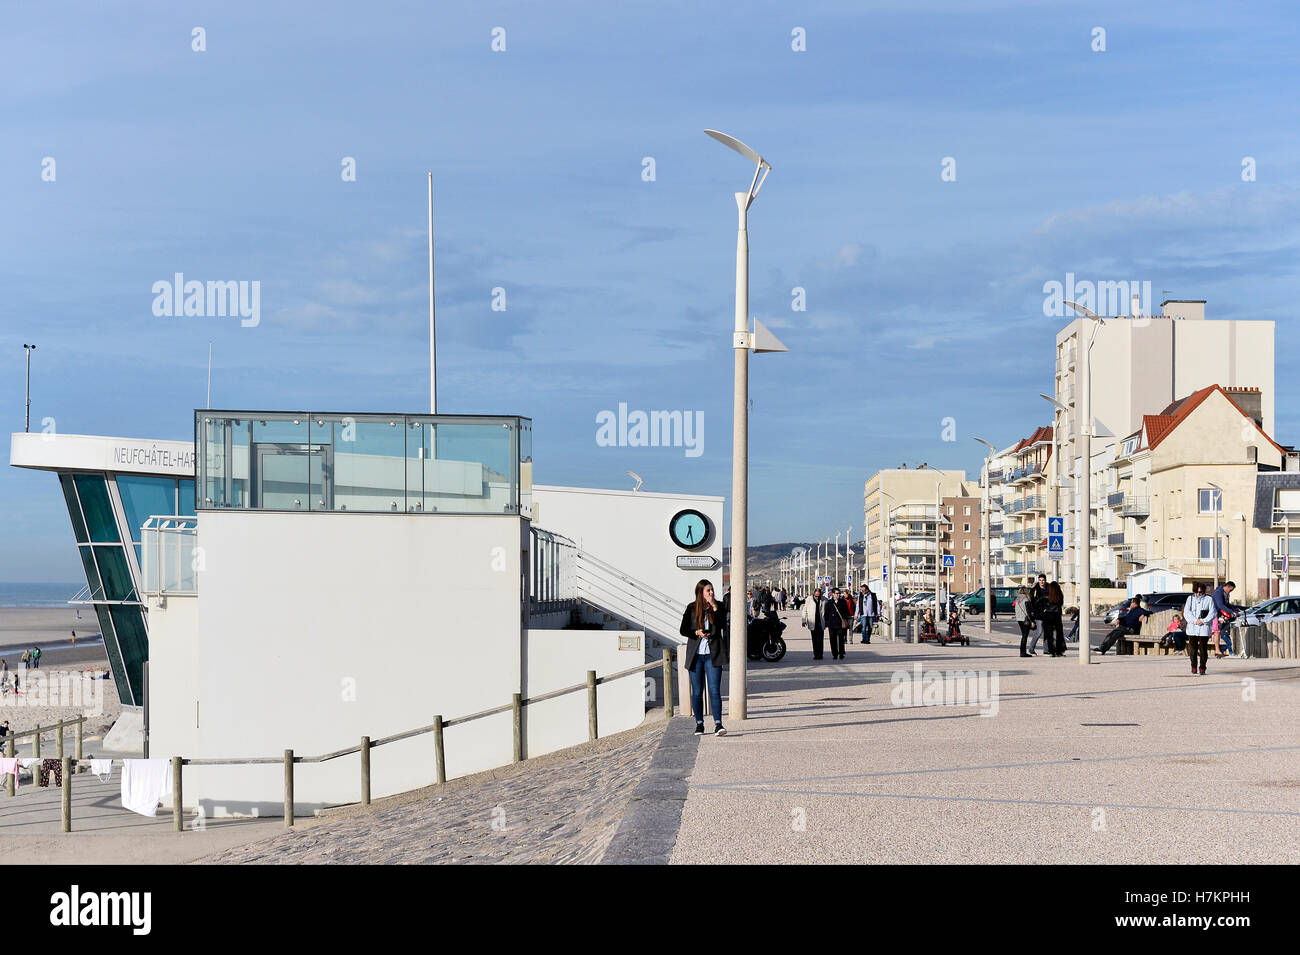 First-aid post on the beach of Neufchatel- Hardelot, Pas de Calais, France - Stock Image